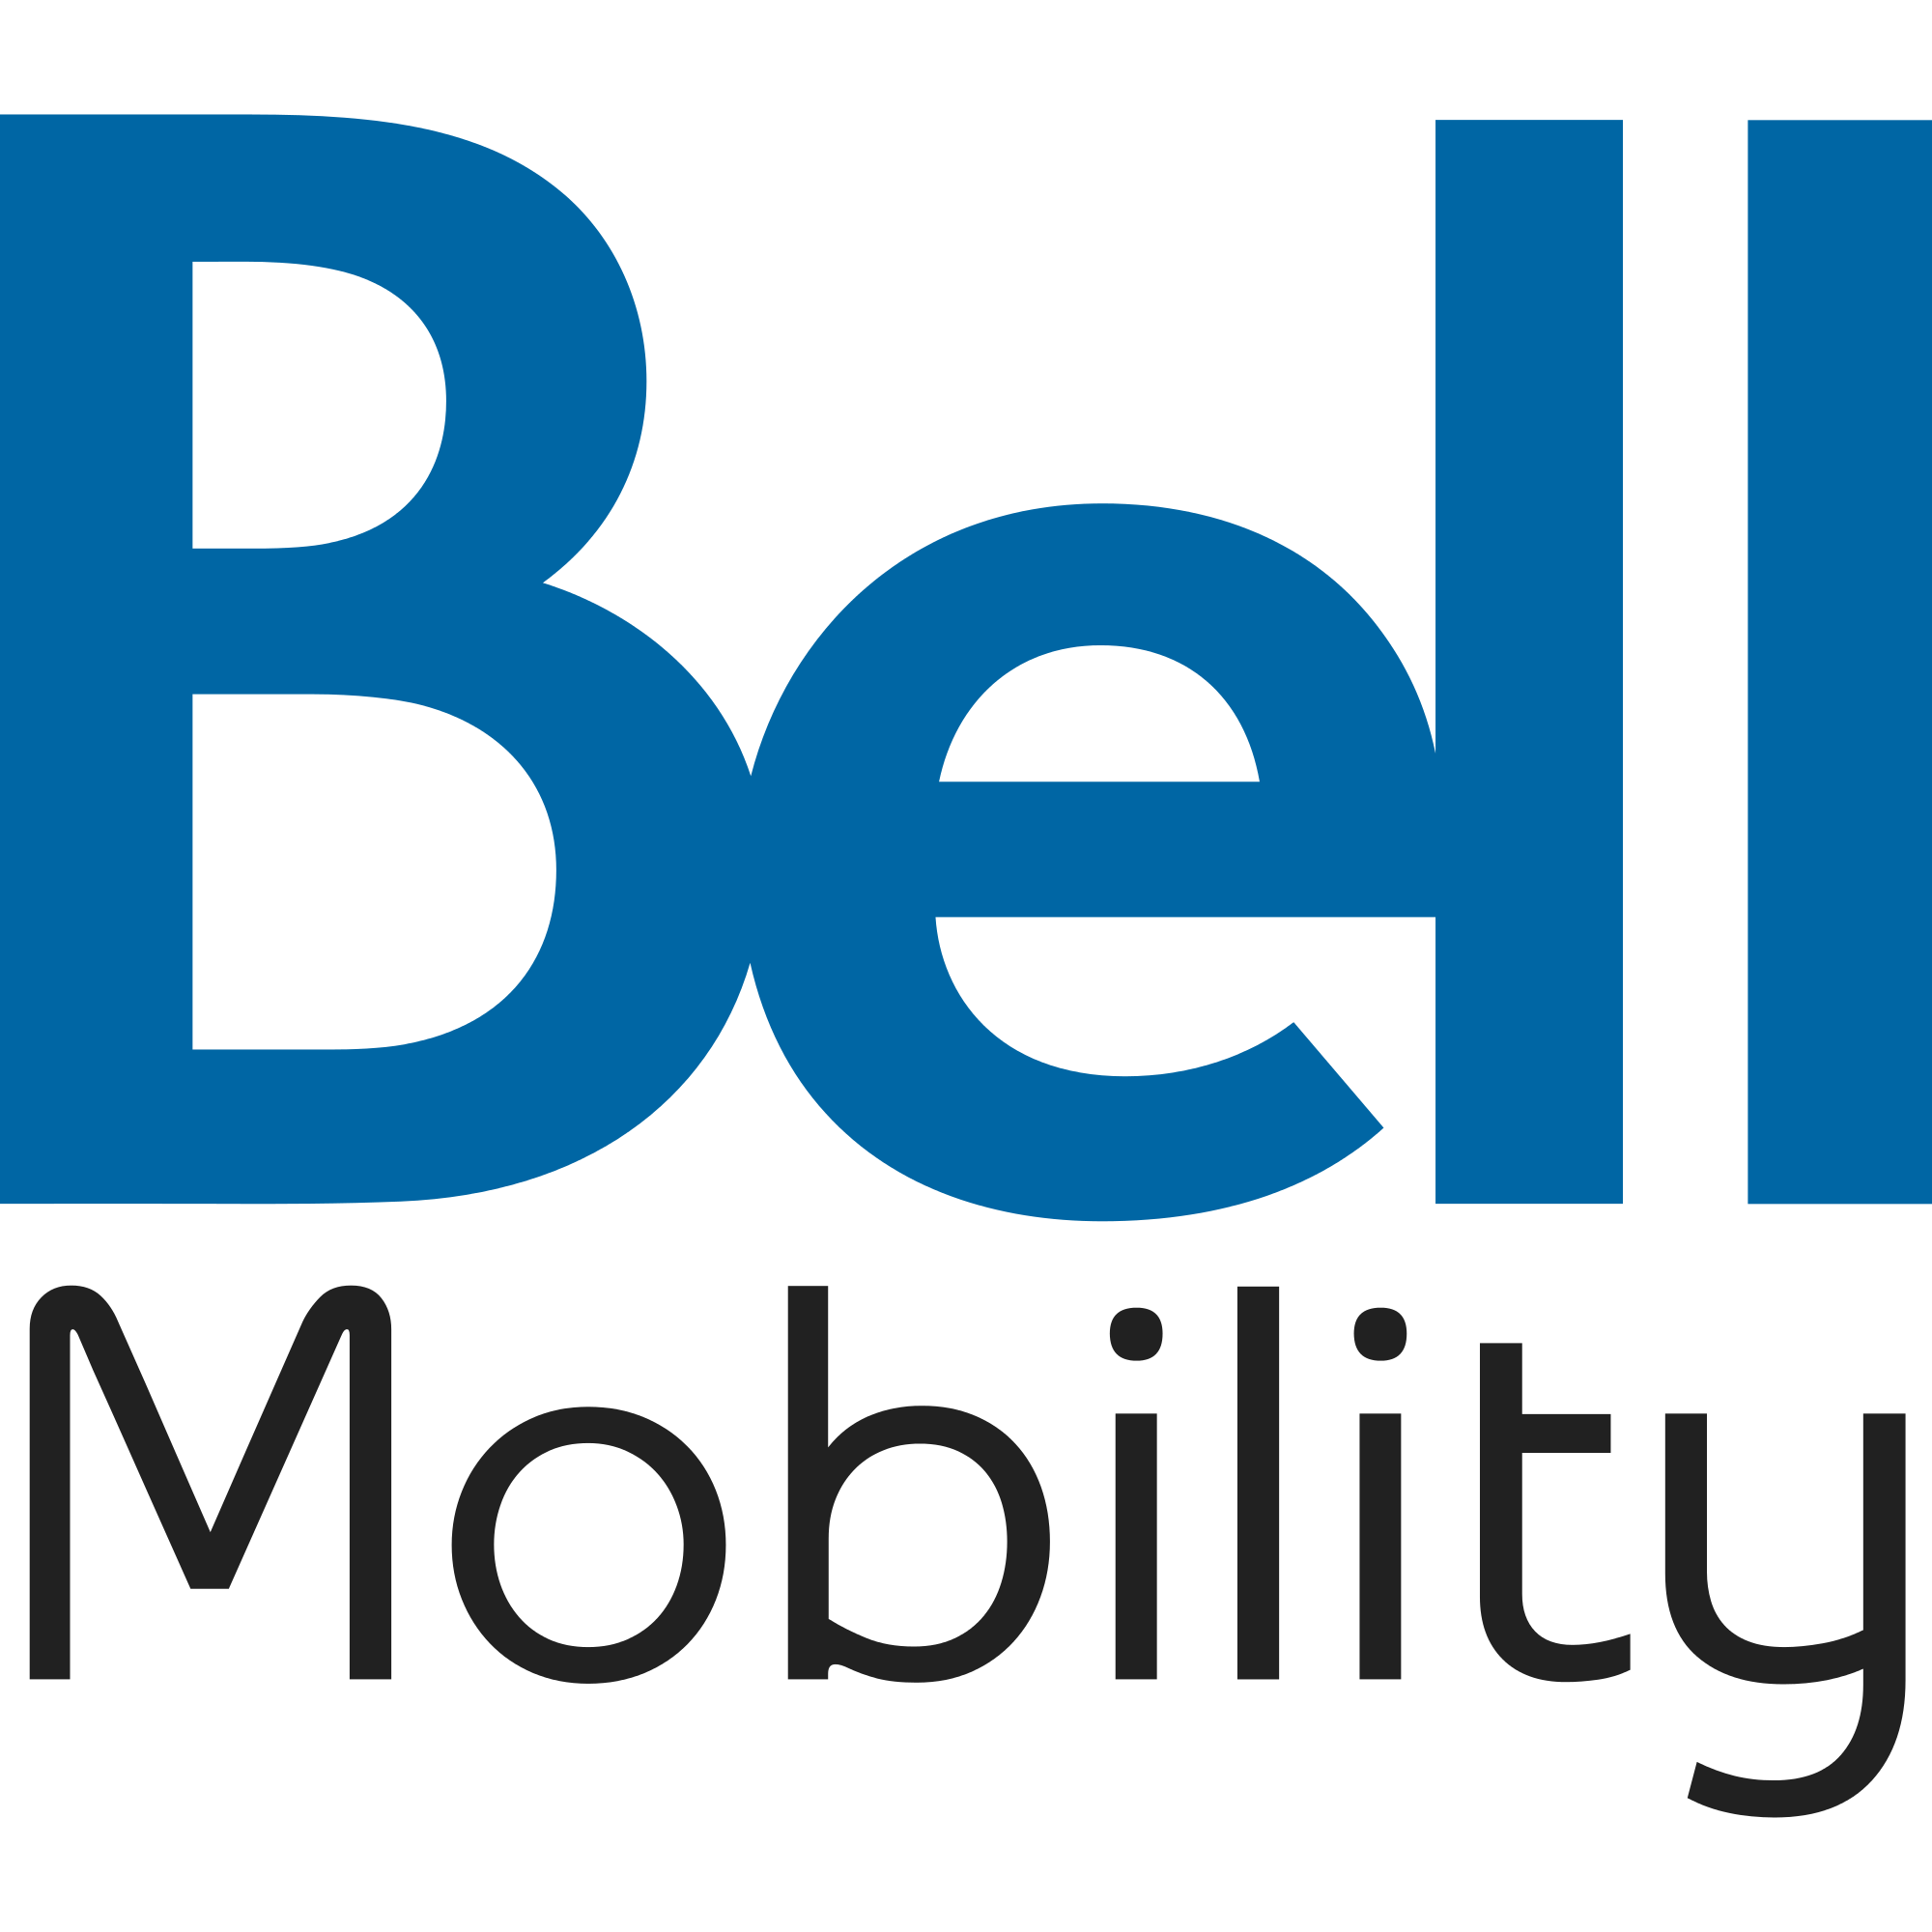 Bell svg logo. File mobility wikimedia commons